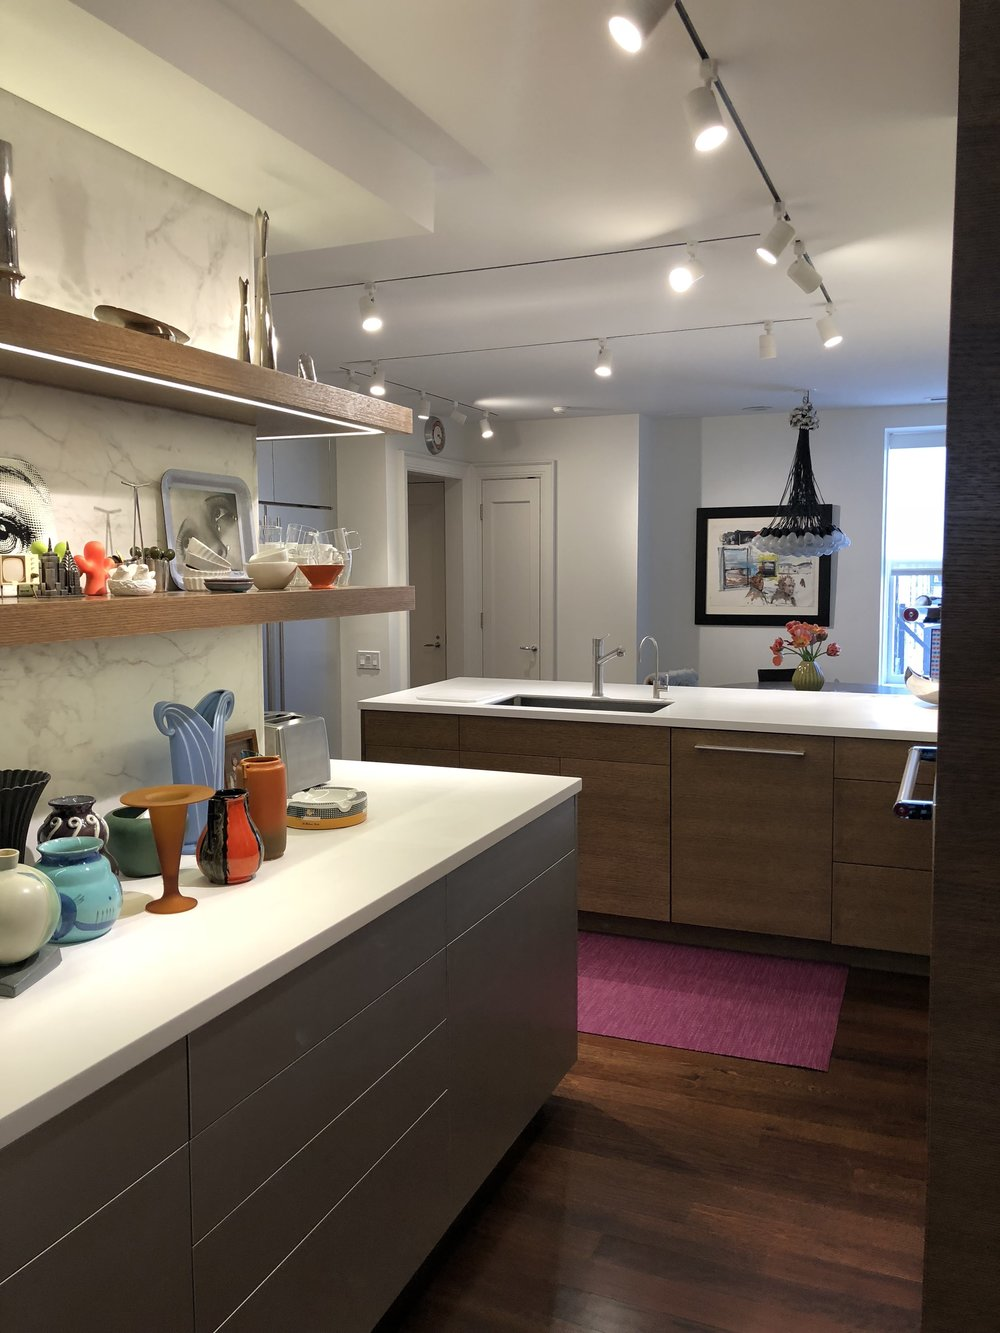 Kitchen After Repairs and Renovations